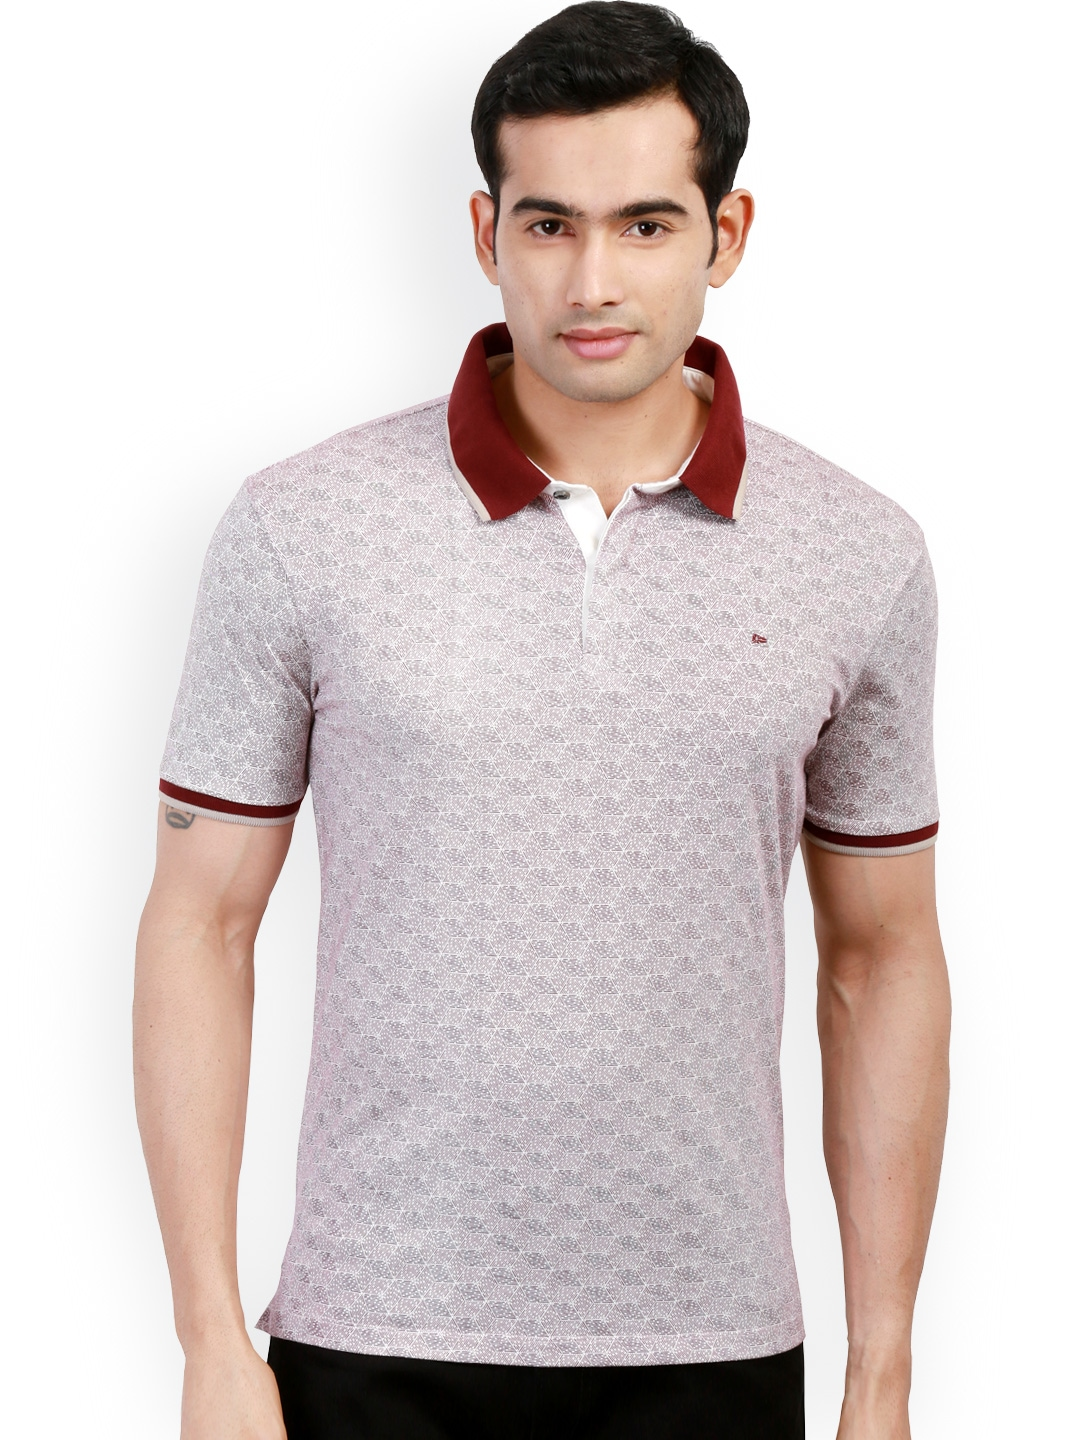 Myntra design classics maroon printed slim fit polo t for Myntra t shirt design